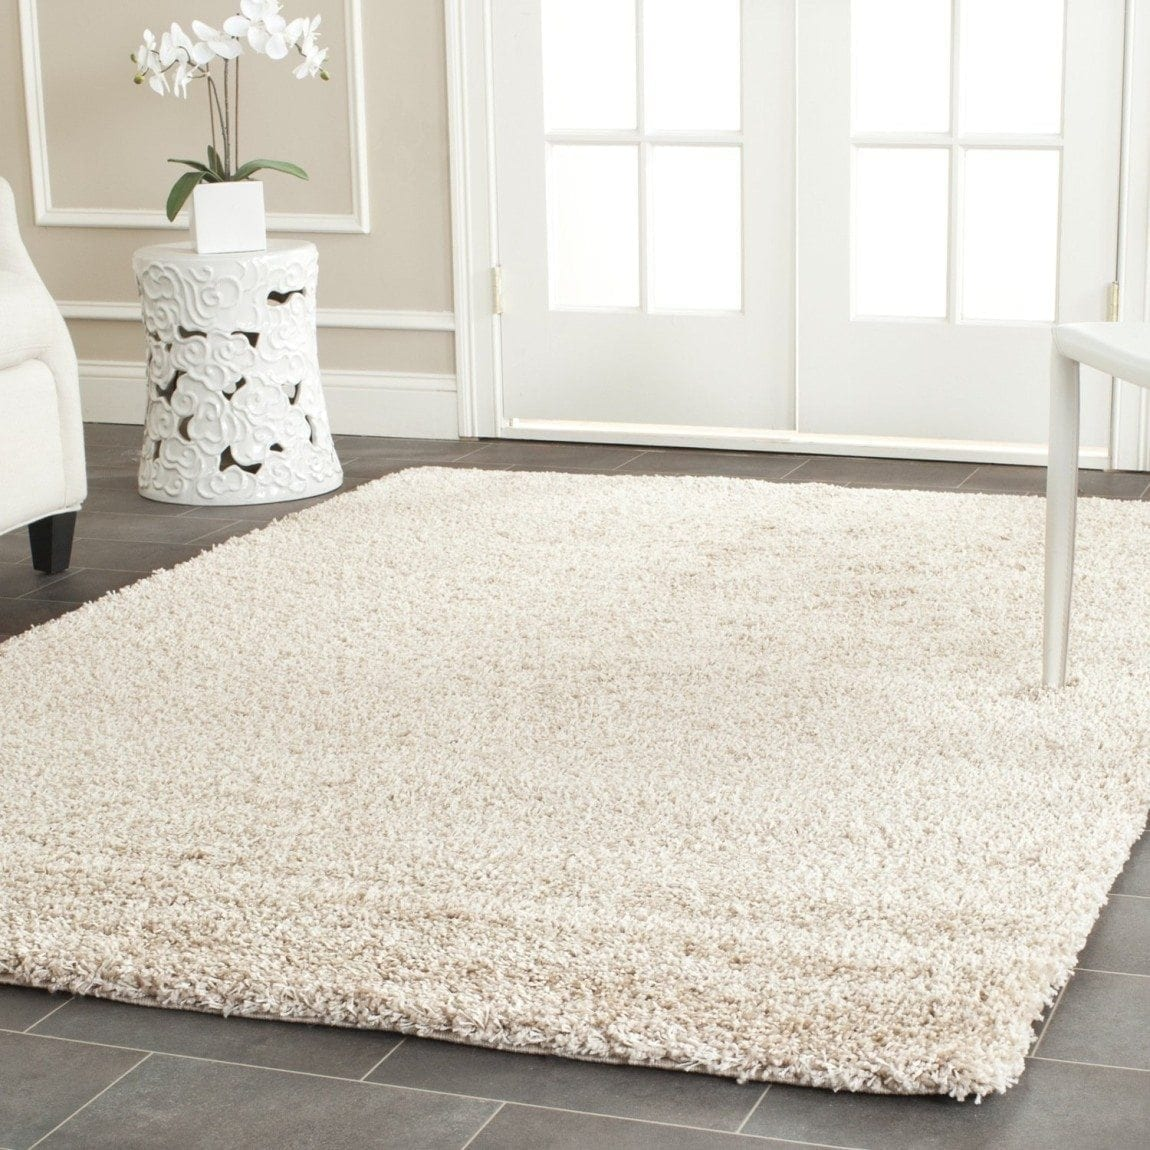 Beautiful Safavieh California Shag Collection SG151 1313 Beige Shag Area Rug, 8 Feet  By 10